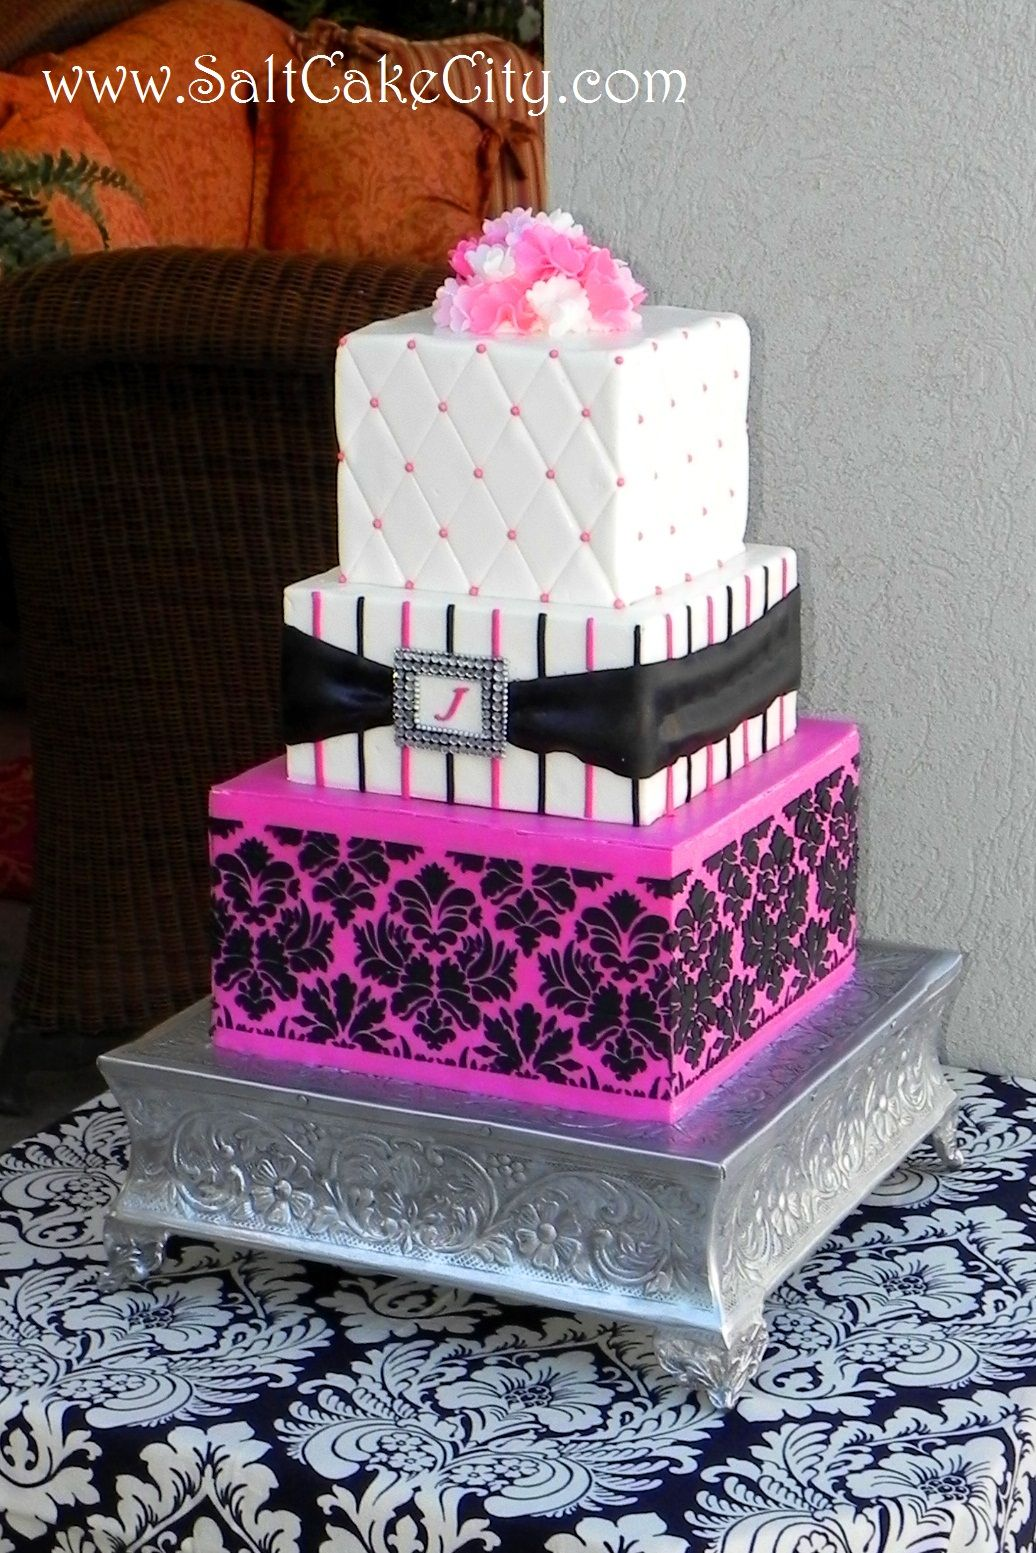 Her Wedding Colors Were Hot Pink Black And White And She Wanted